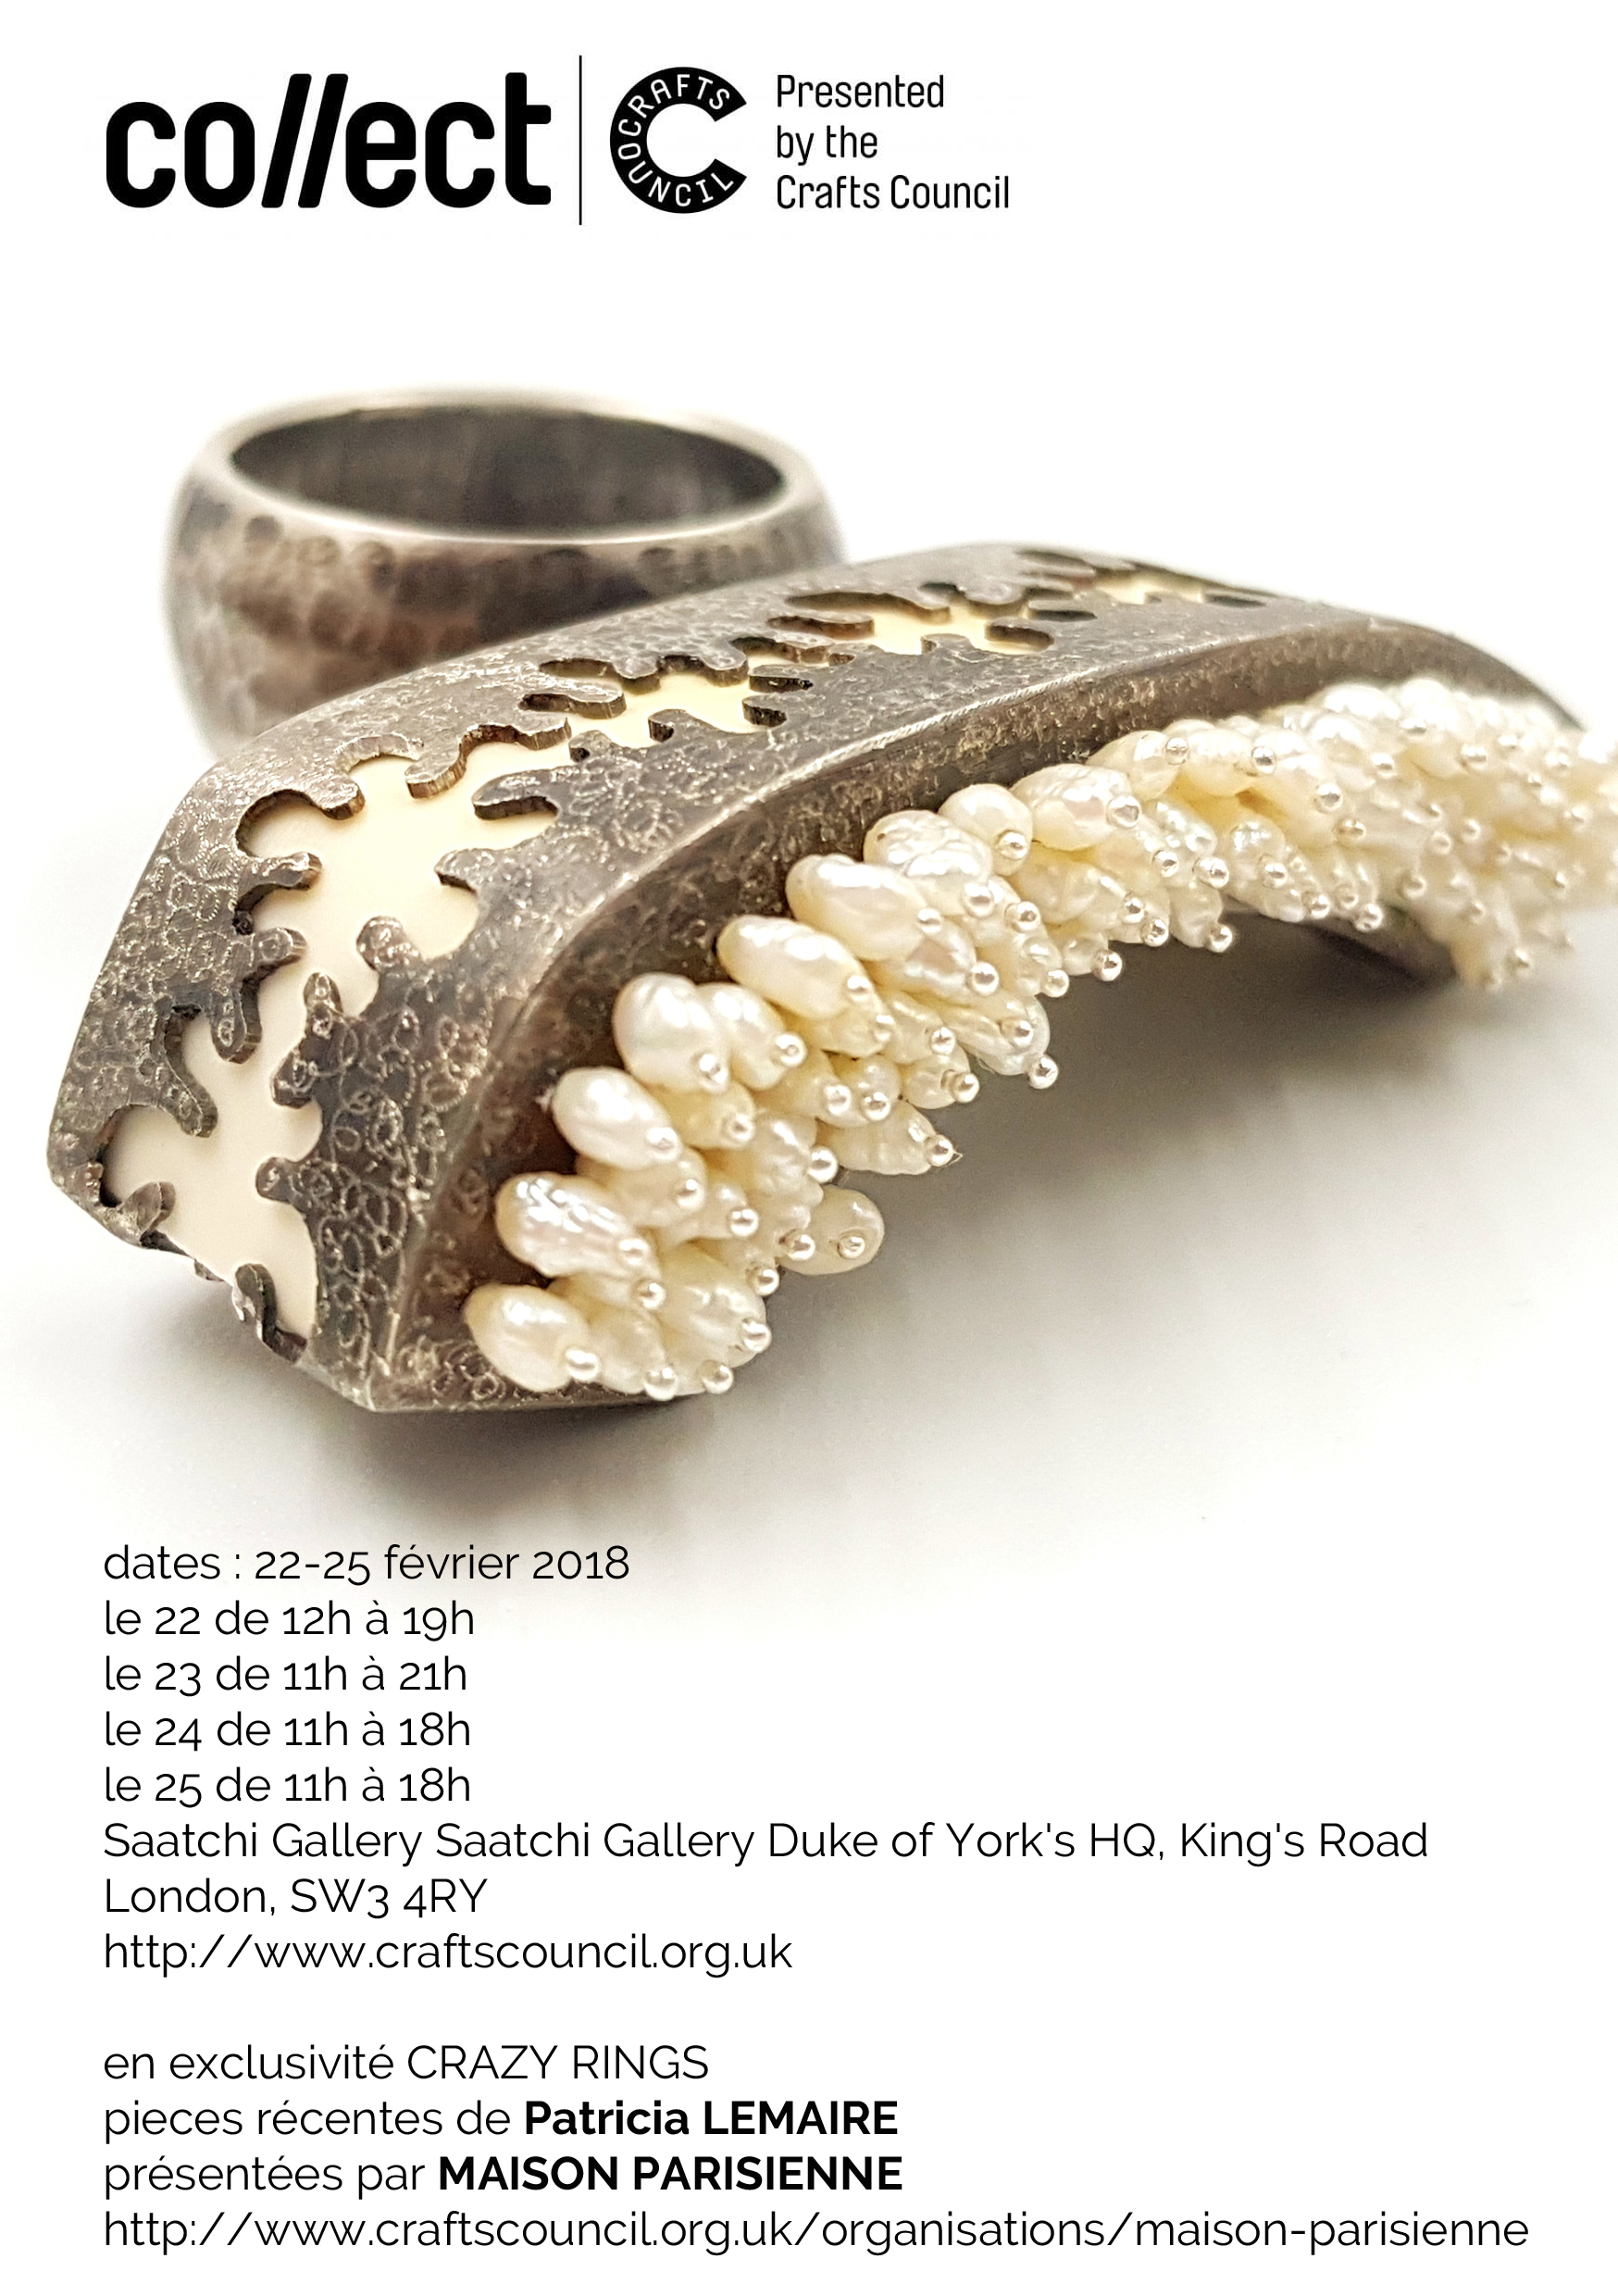 PatriciaLemaire_CollectArtFair_London_2018-Patricia-Lemaire-createur-de-bijoux-contemporains